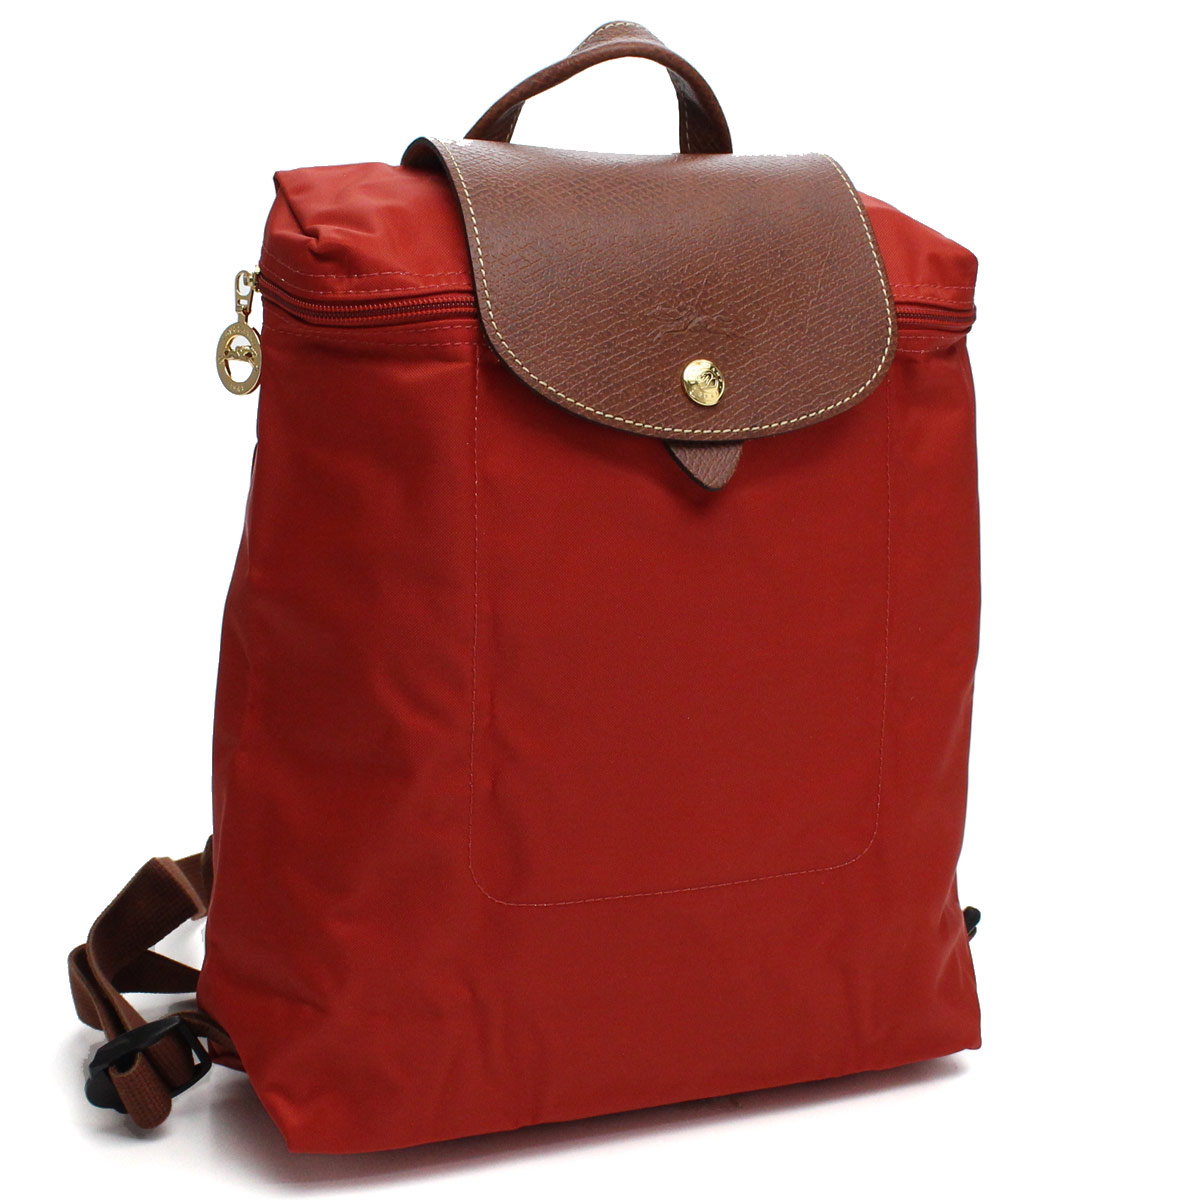 f45e61c5a Bighit The total brand wholesale: Longchamp (LONGCHAMP) LE PLIAGE le  プリアージュバックパックリュック 1699 089 A29 red system | Rakuten Global Market